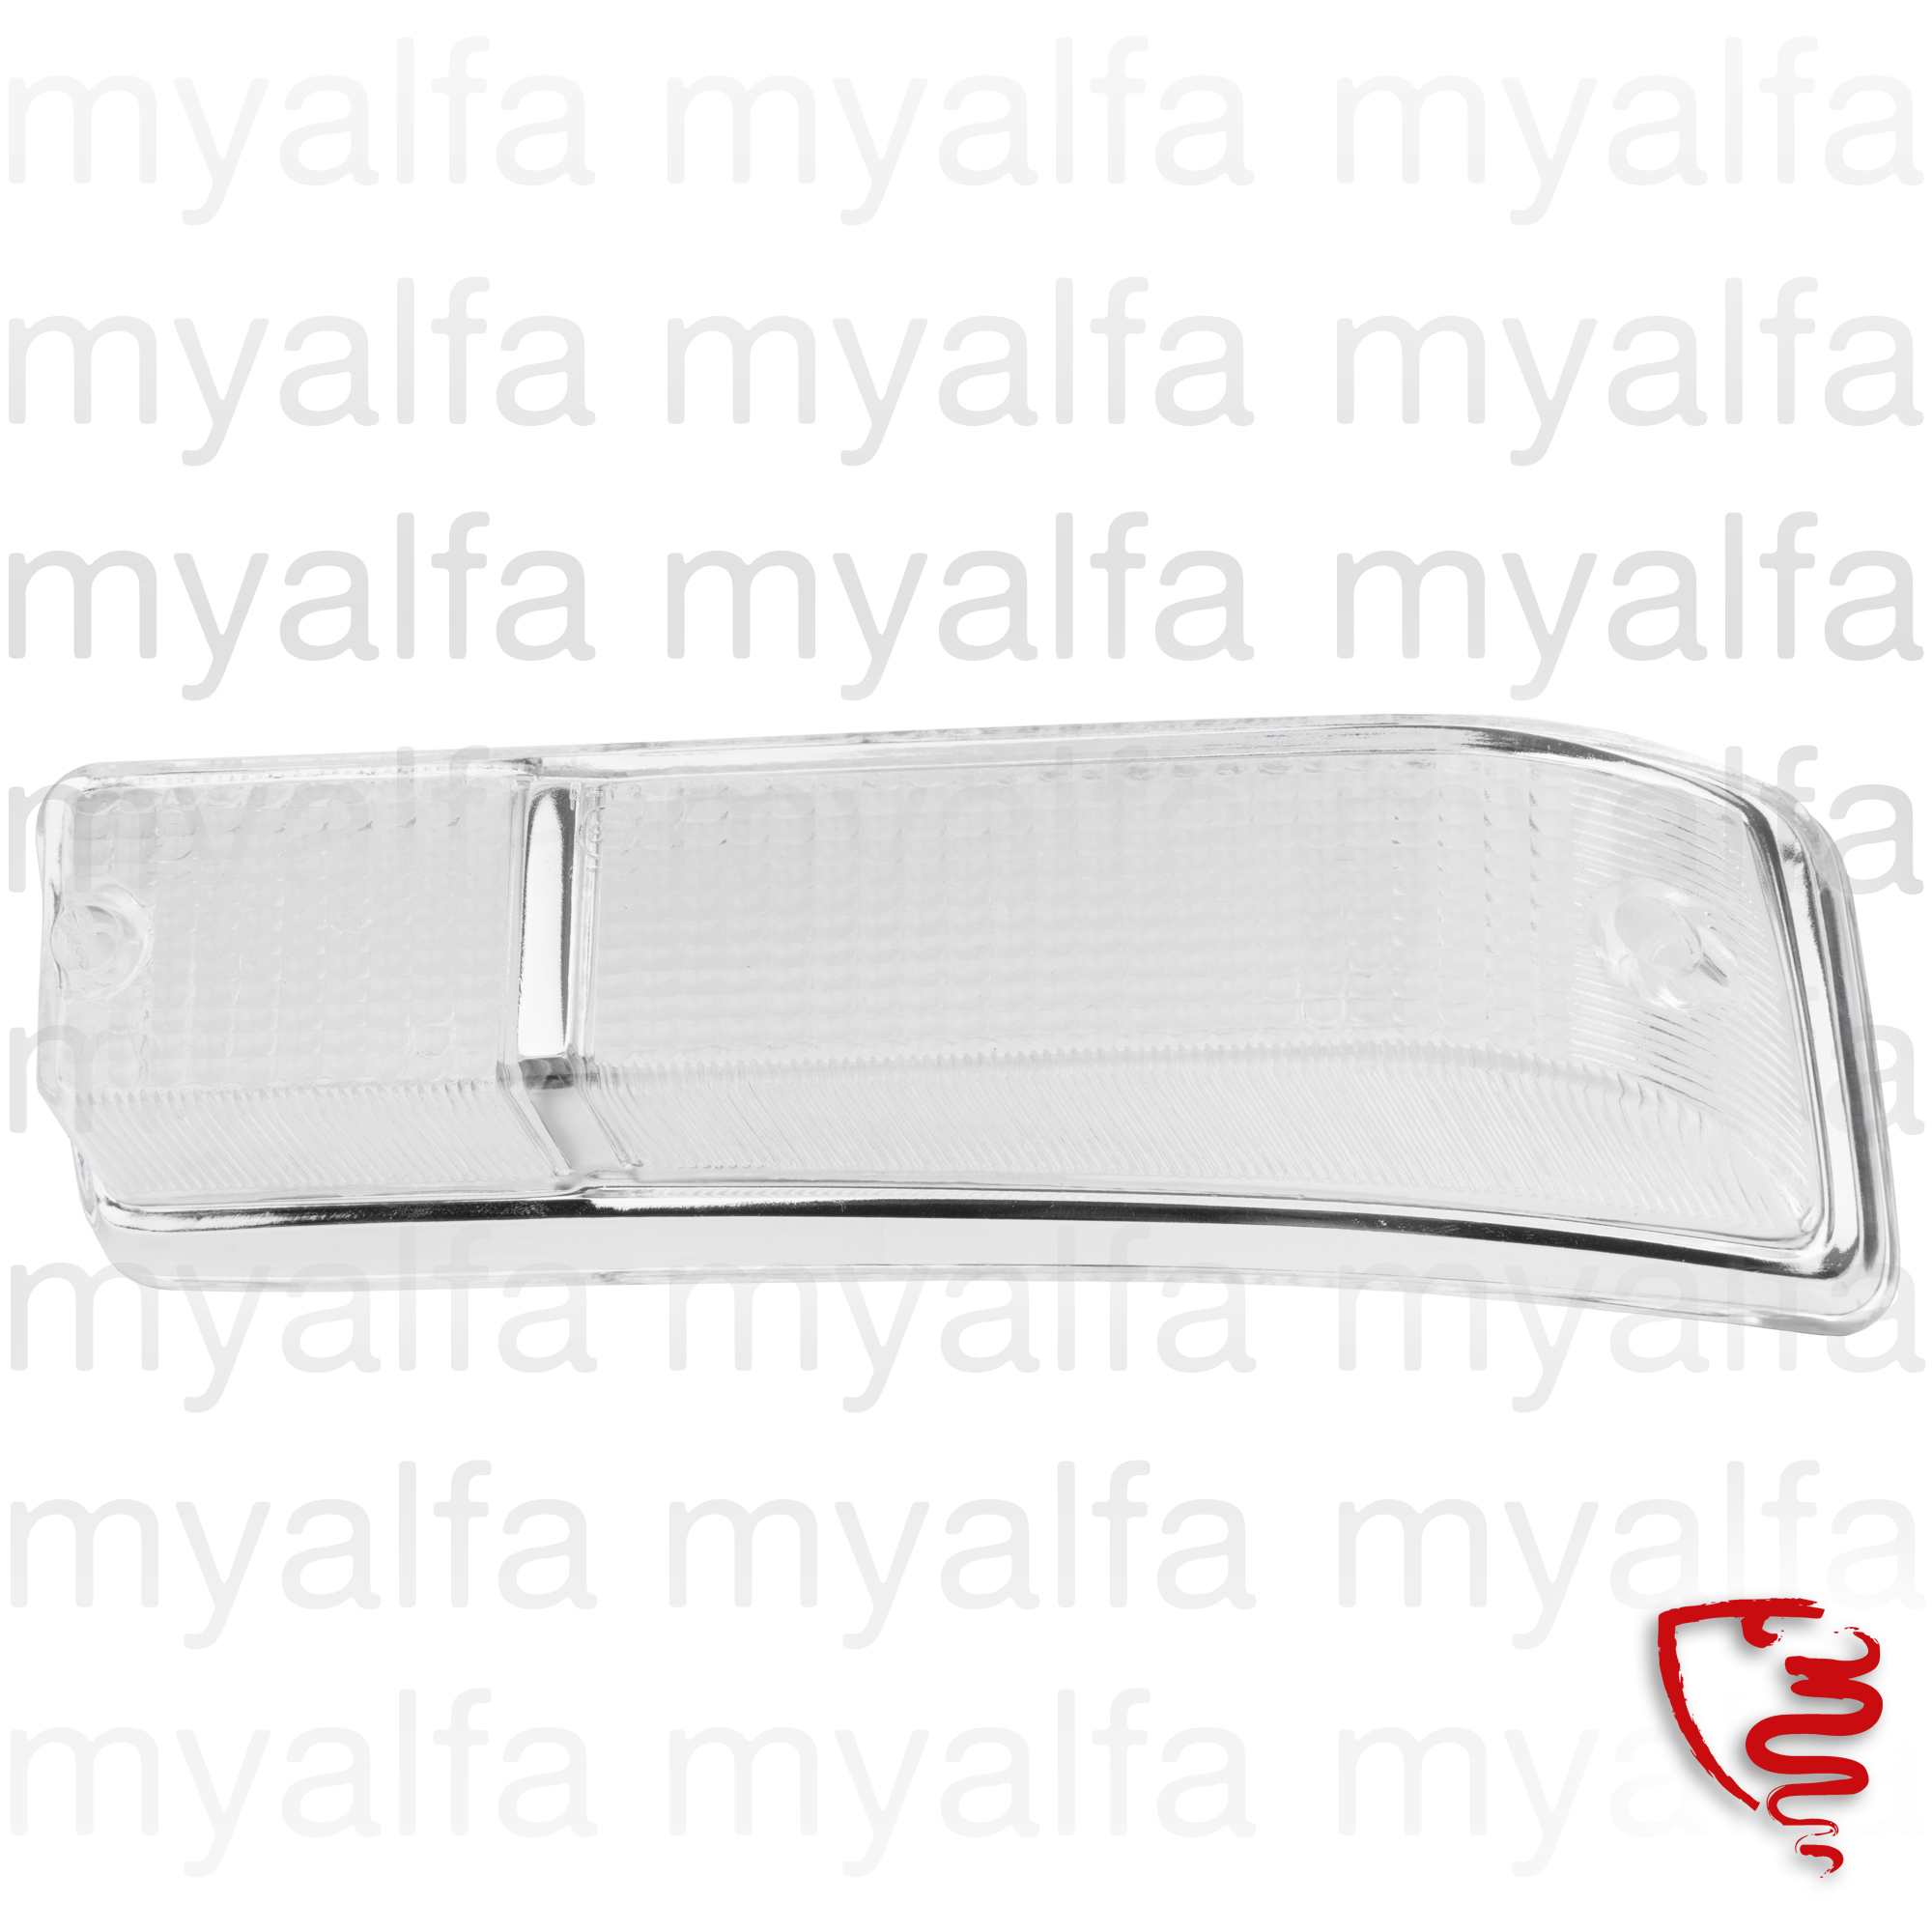 Taillight lens front GT Bertone left 2nd series. for 105/115, Coupe, Body parts, Lighting, Indicators